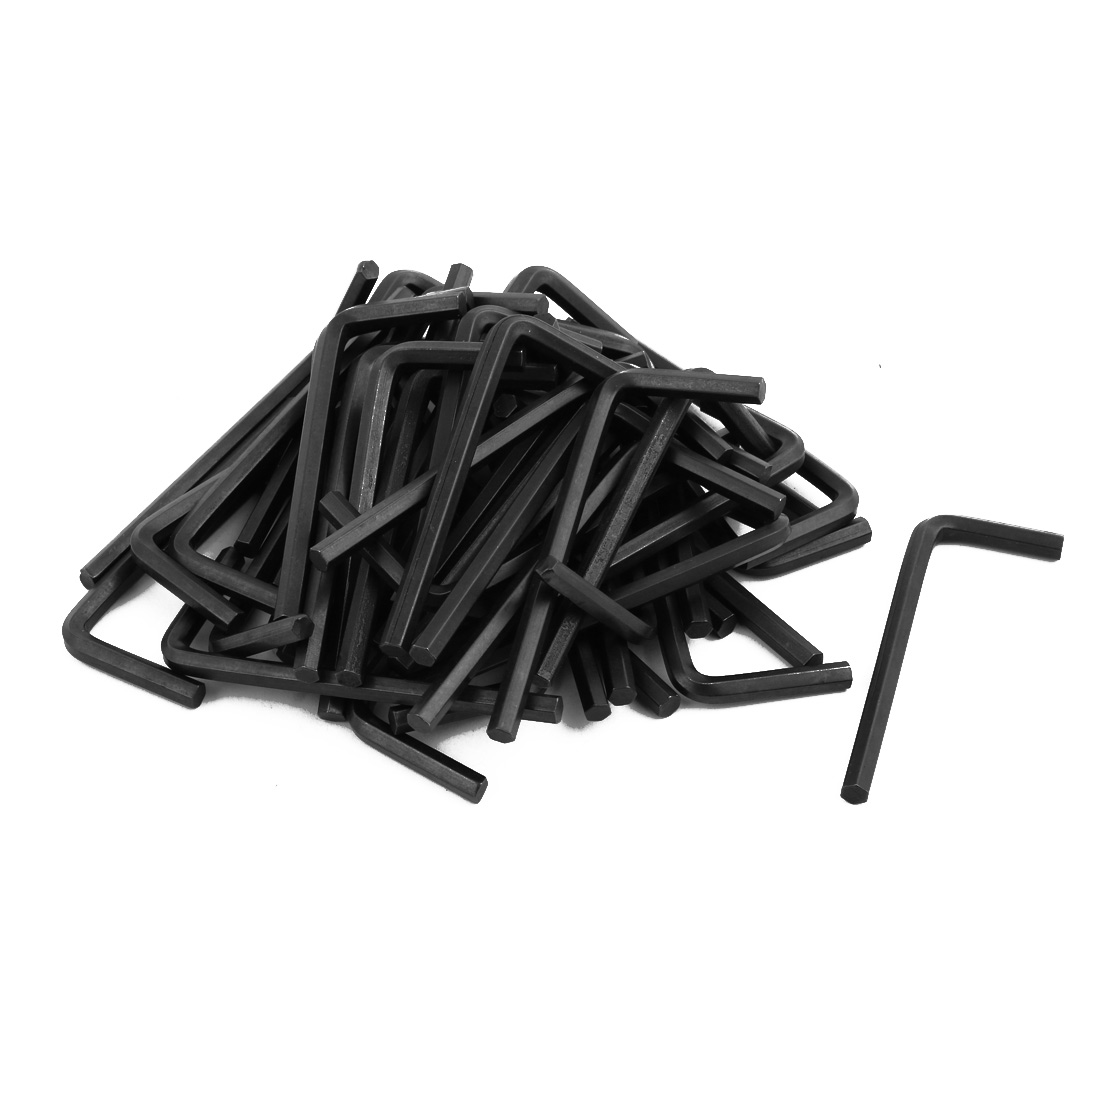 50pcs M5 5mm Chrome Vanadium Steel w Black-oxide Long Arm Hex Key Wrench Metric Black